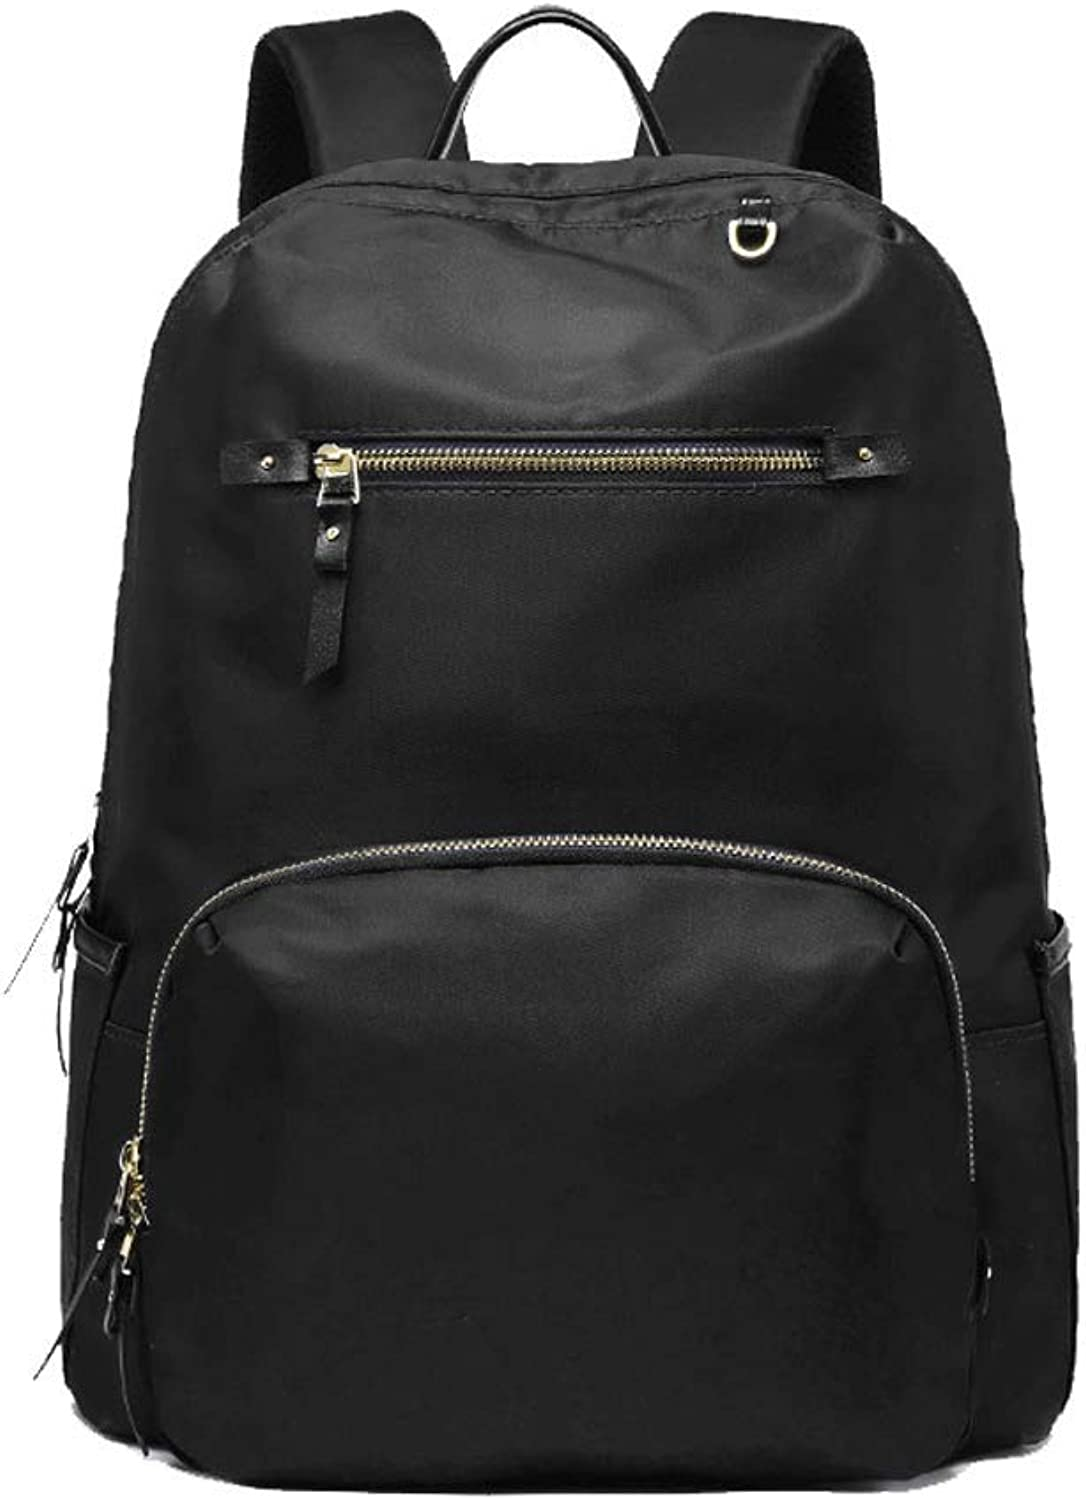 Backpack, fashion versatile lightweight large capacity Oxford cloth 14 inch laptop backpack unisex leisure travel travel work school backpack blueee blackblackA